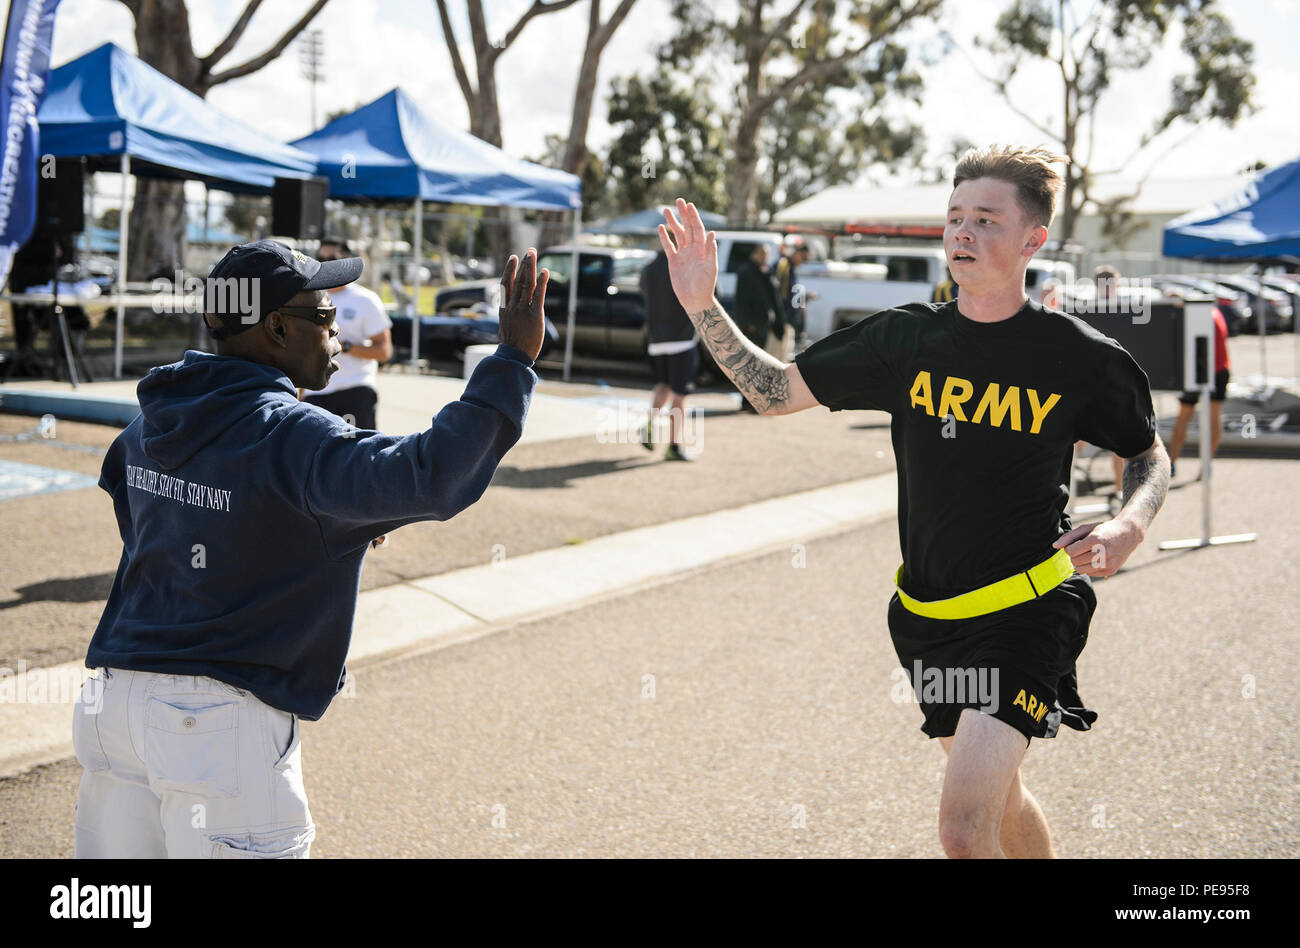 NAVAL BASE SAN DIEGO (Nov. 10, 2015)  Servicemembers cheer each other on during an MWR Veterans Day run or walk. The Veterans Day 2 mile run or 1 mile walk was sponsored through MWR and over 300 people attended. (U.S. Navy photo by Mass Communication Specialist 2nd Class Mark El-Rayes/Released) - Stock Image